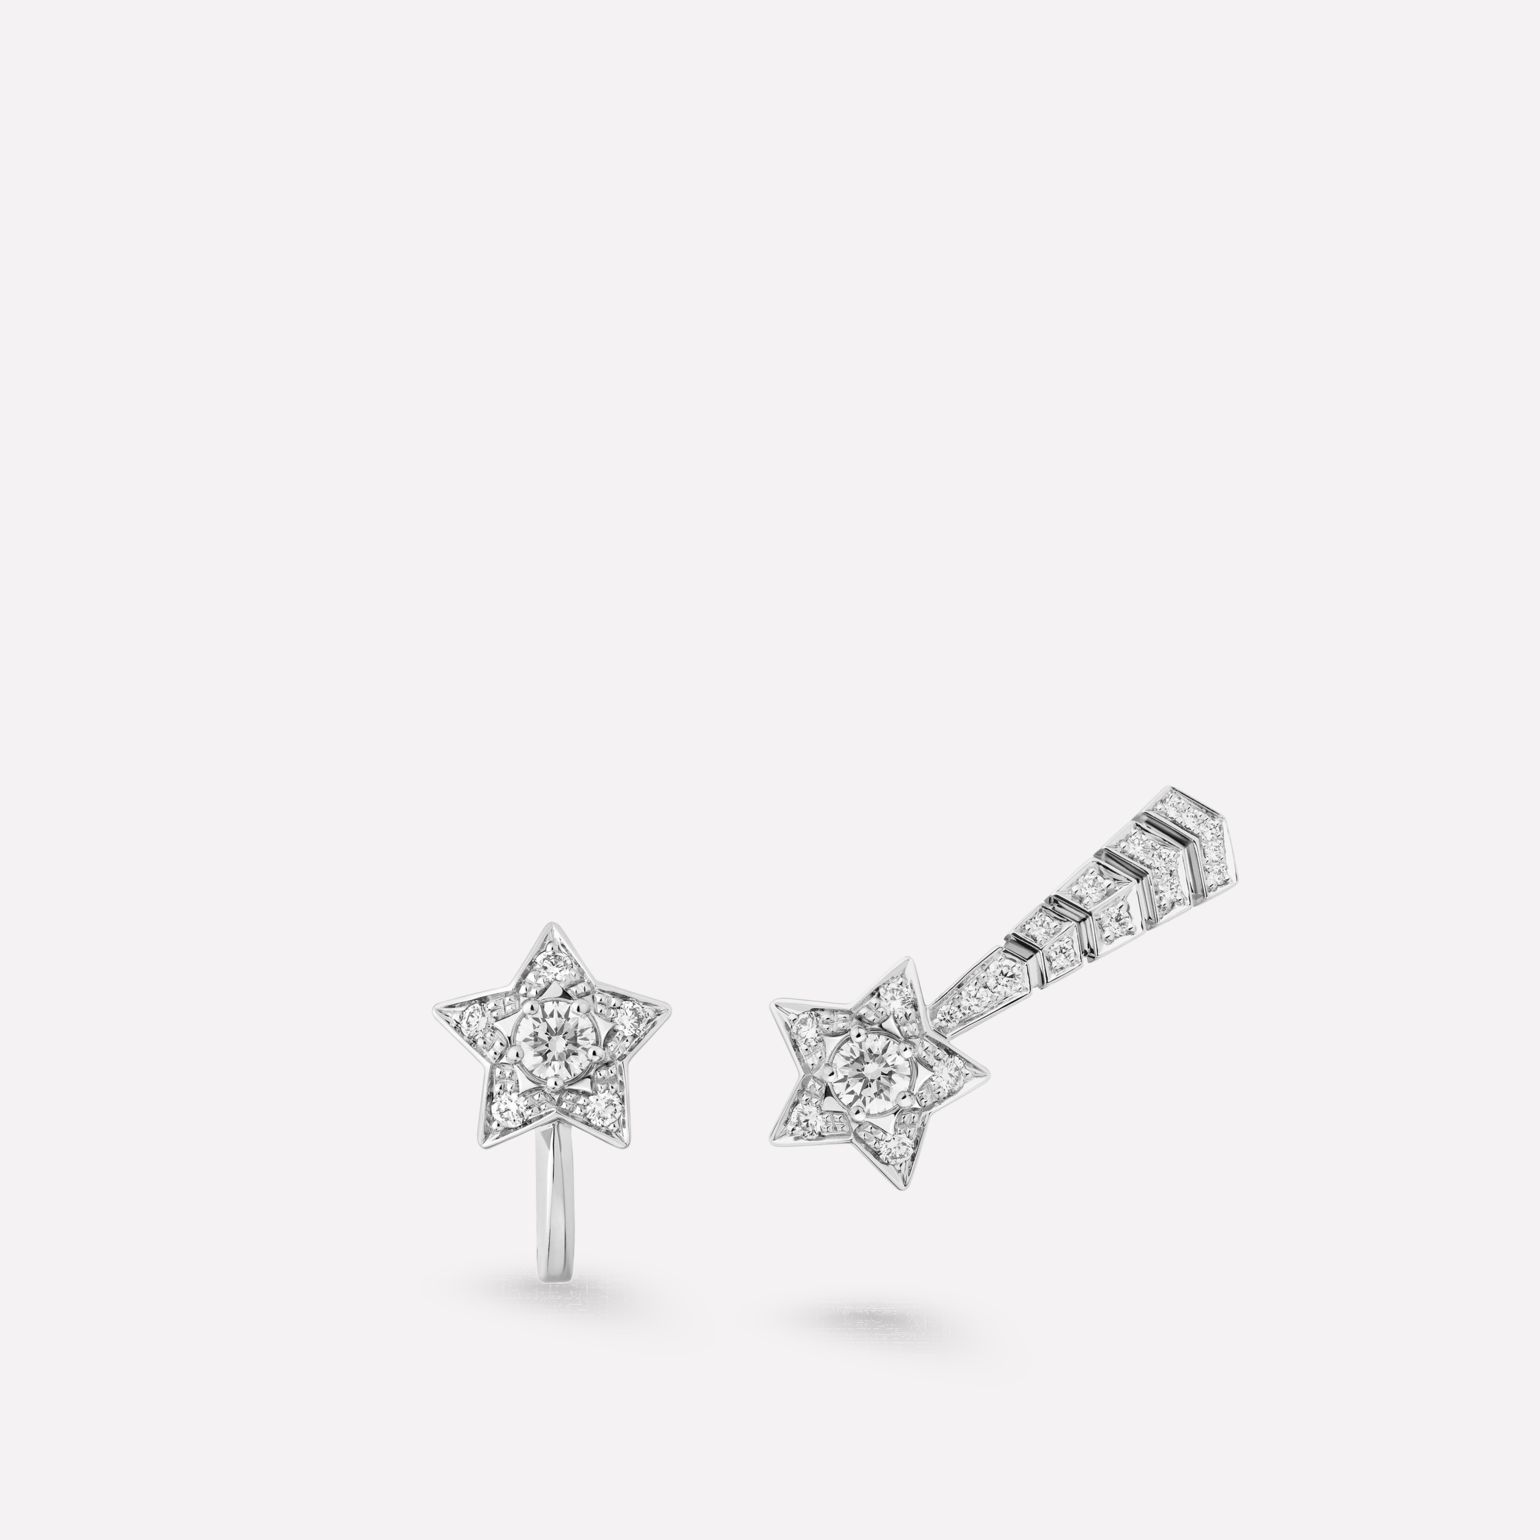 Comète earrings Shooting star earrings in 18K white gold and diamonds with center diamonds